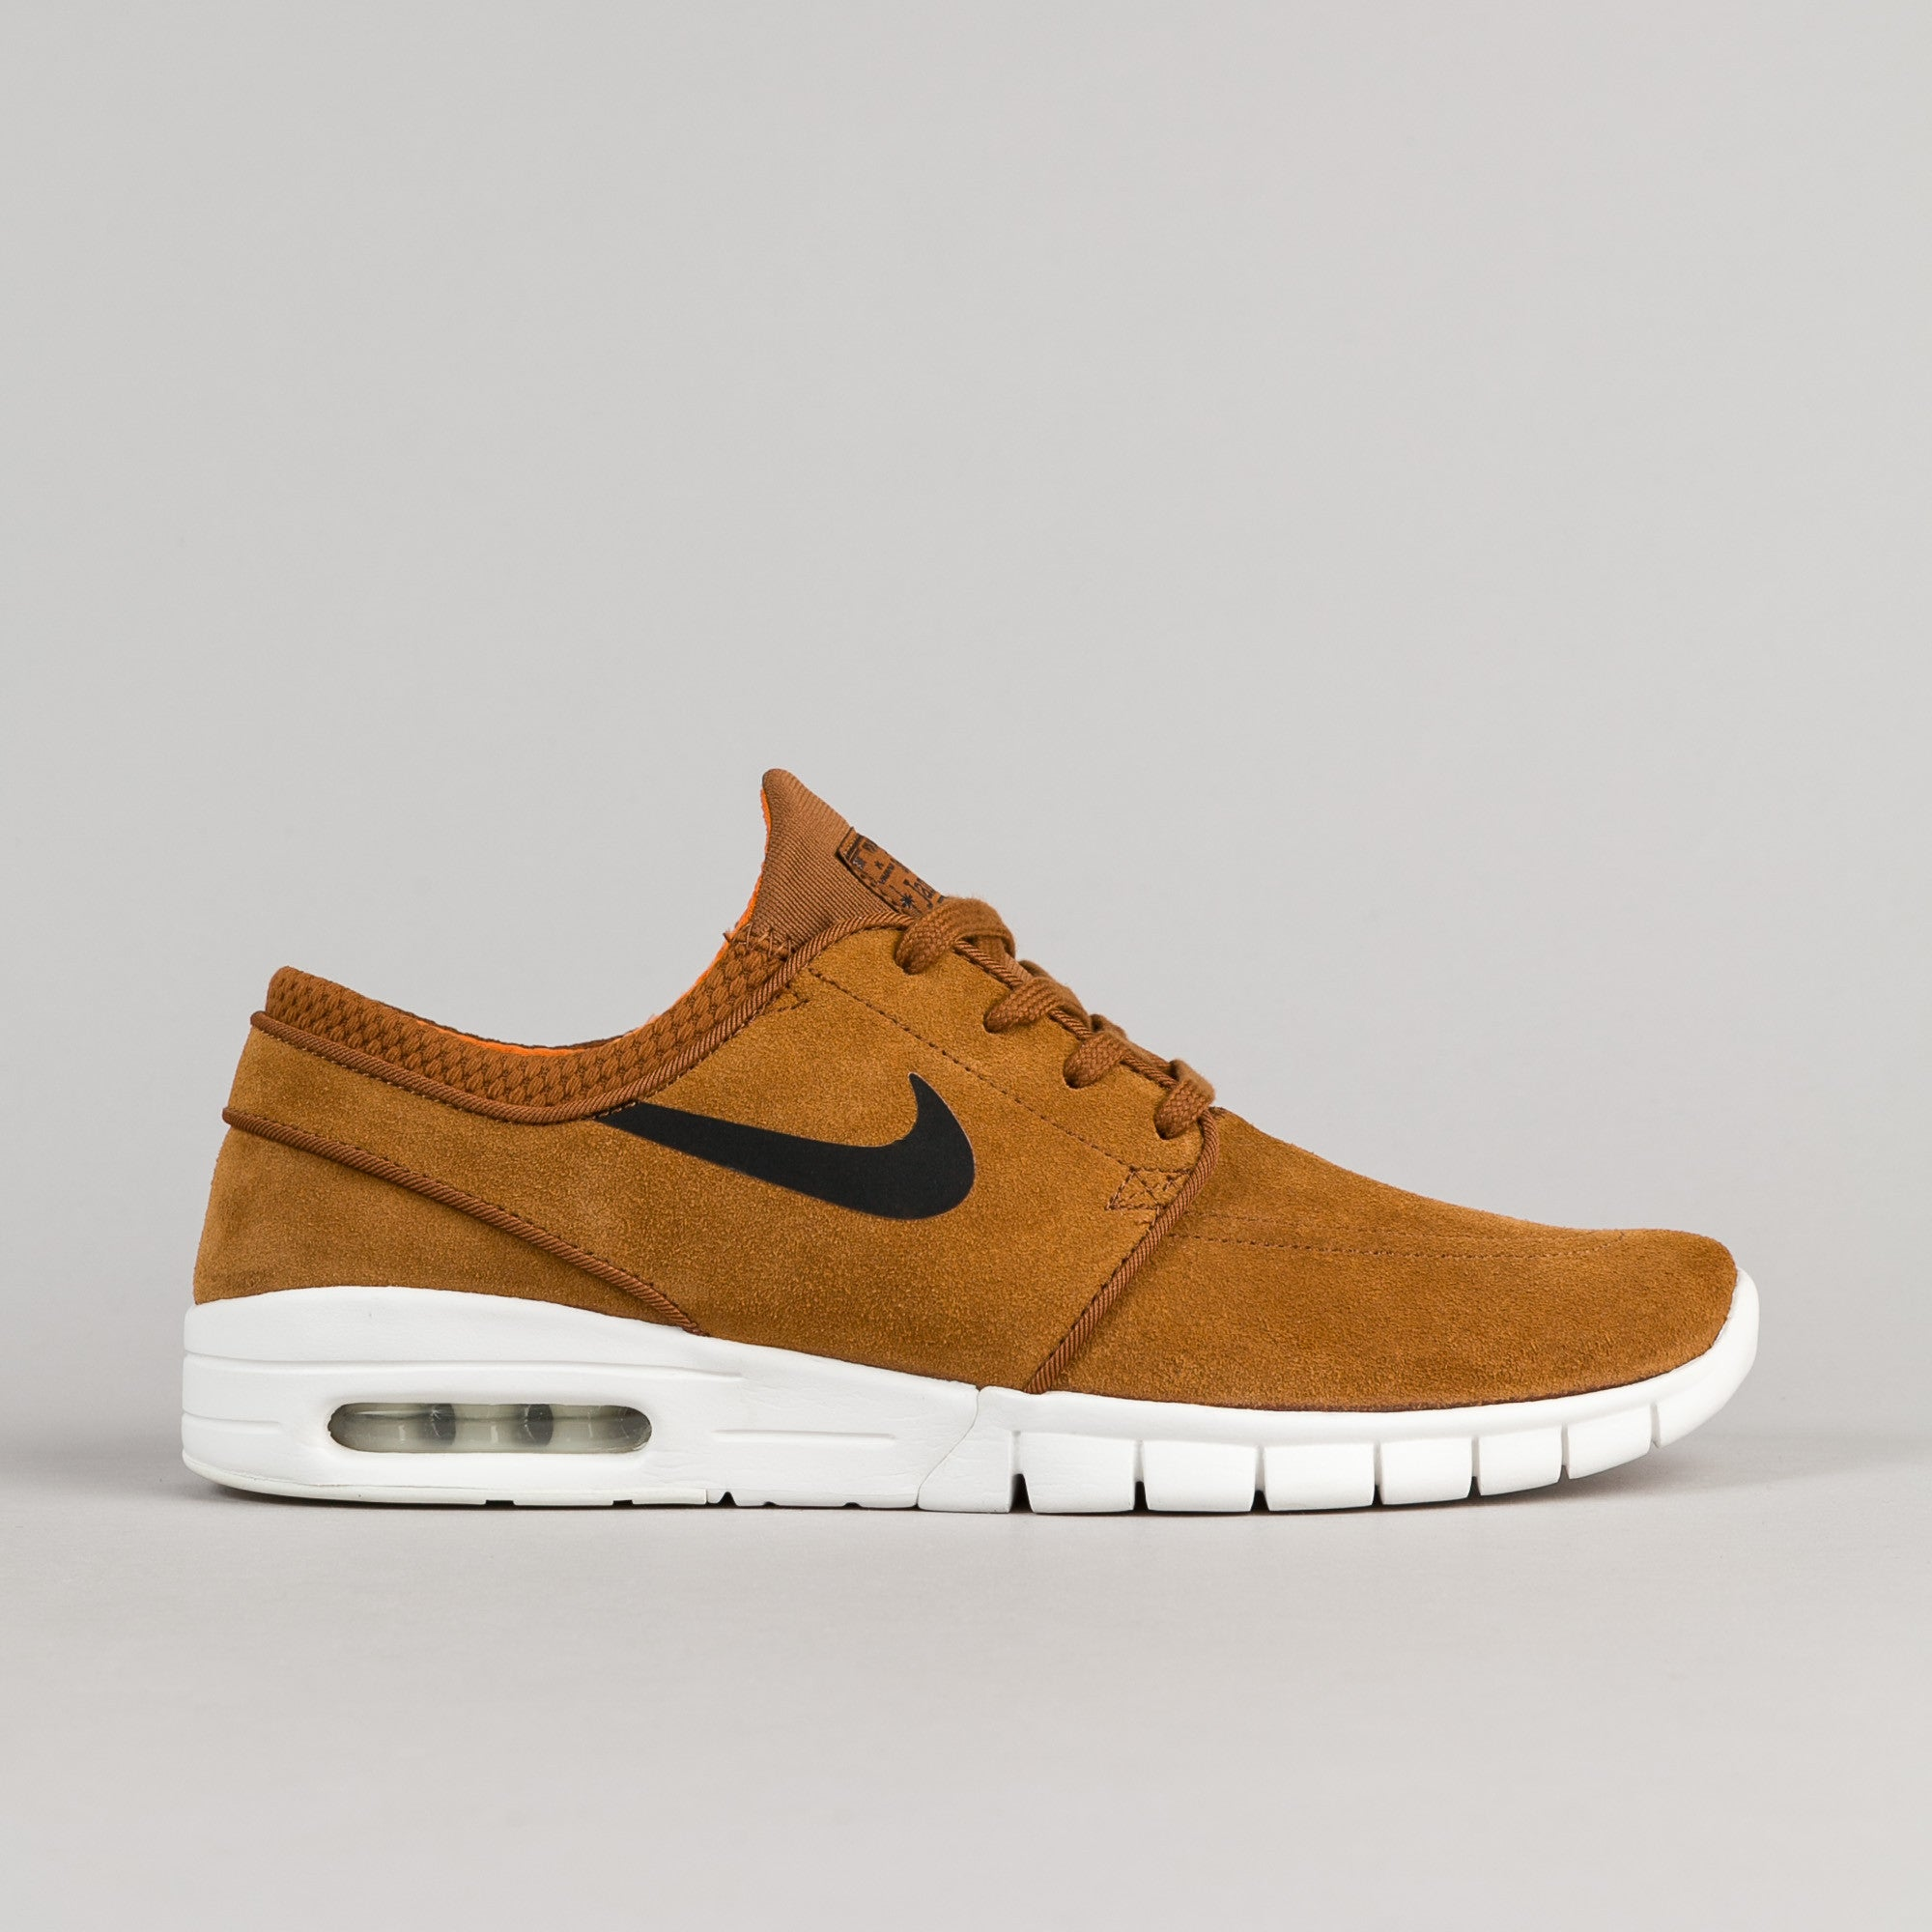 competitive price c17df 8e3ab Nike SB Stefan Janoski Max Suede Shoes - Hazelnut   Black - Ivory - Clay  Orange